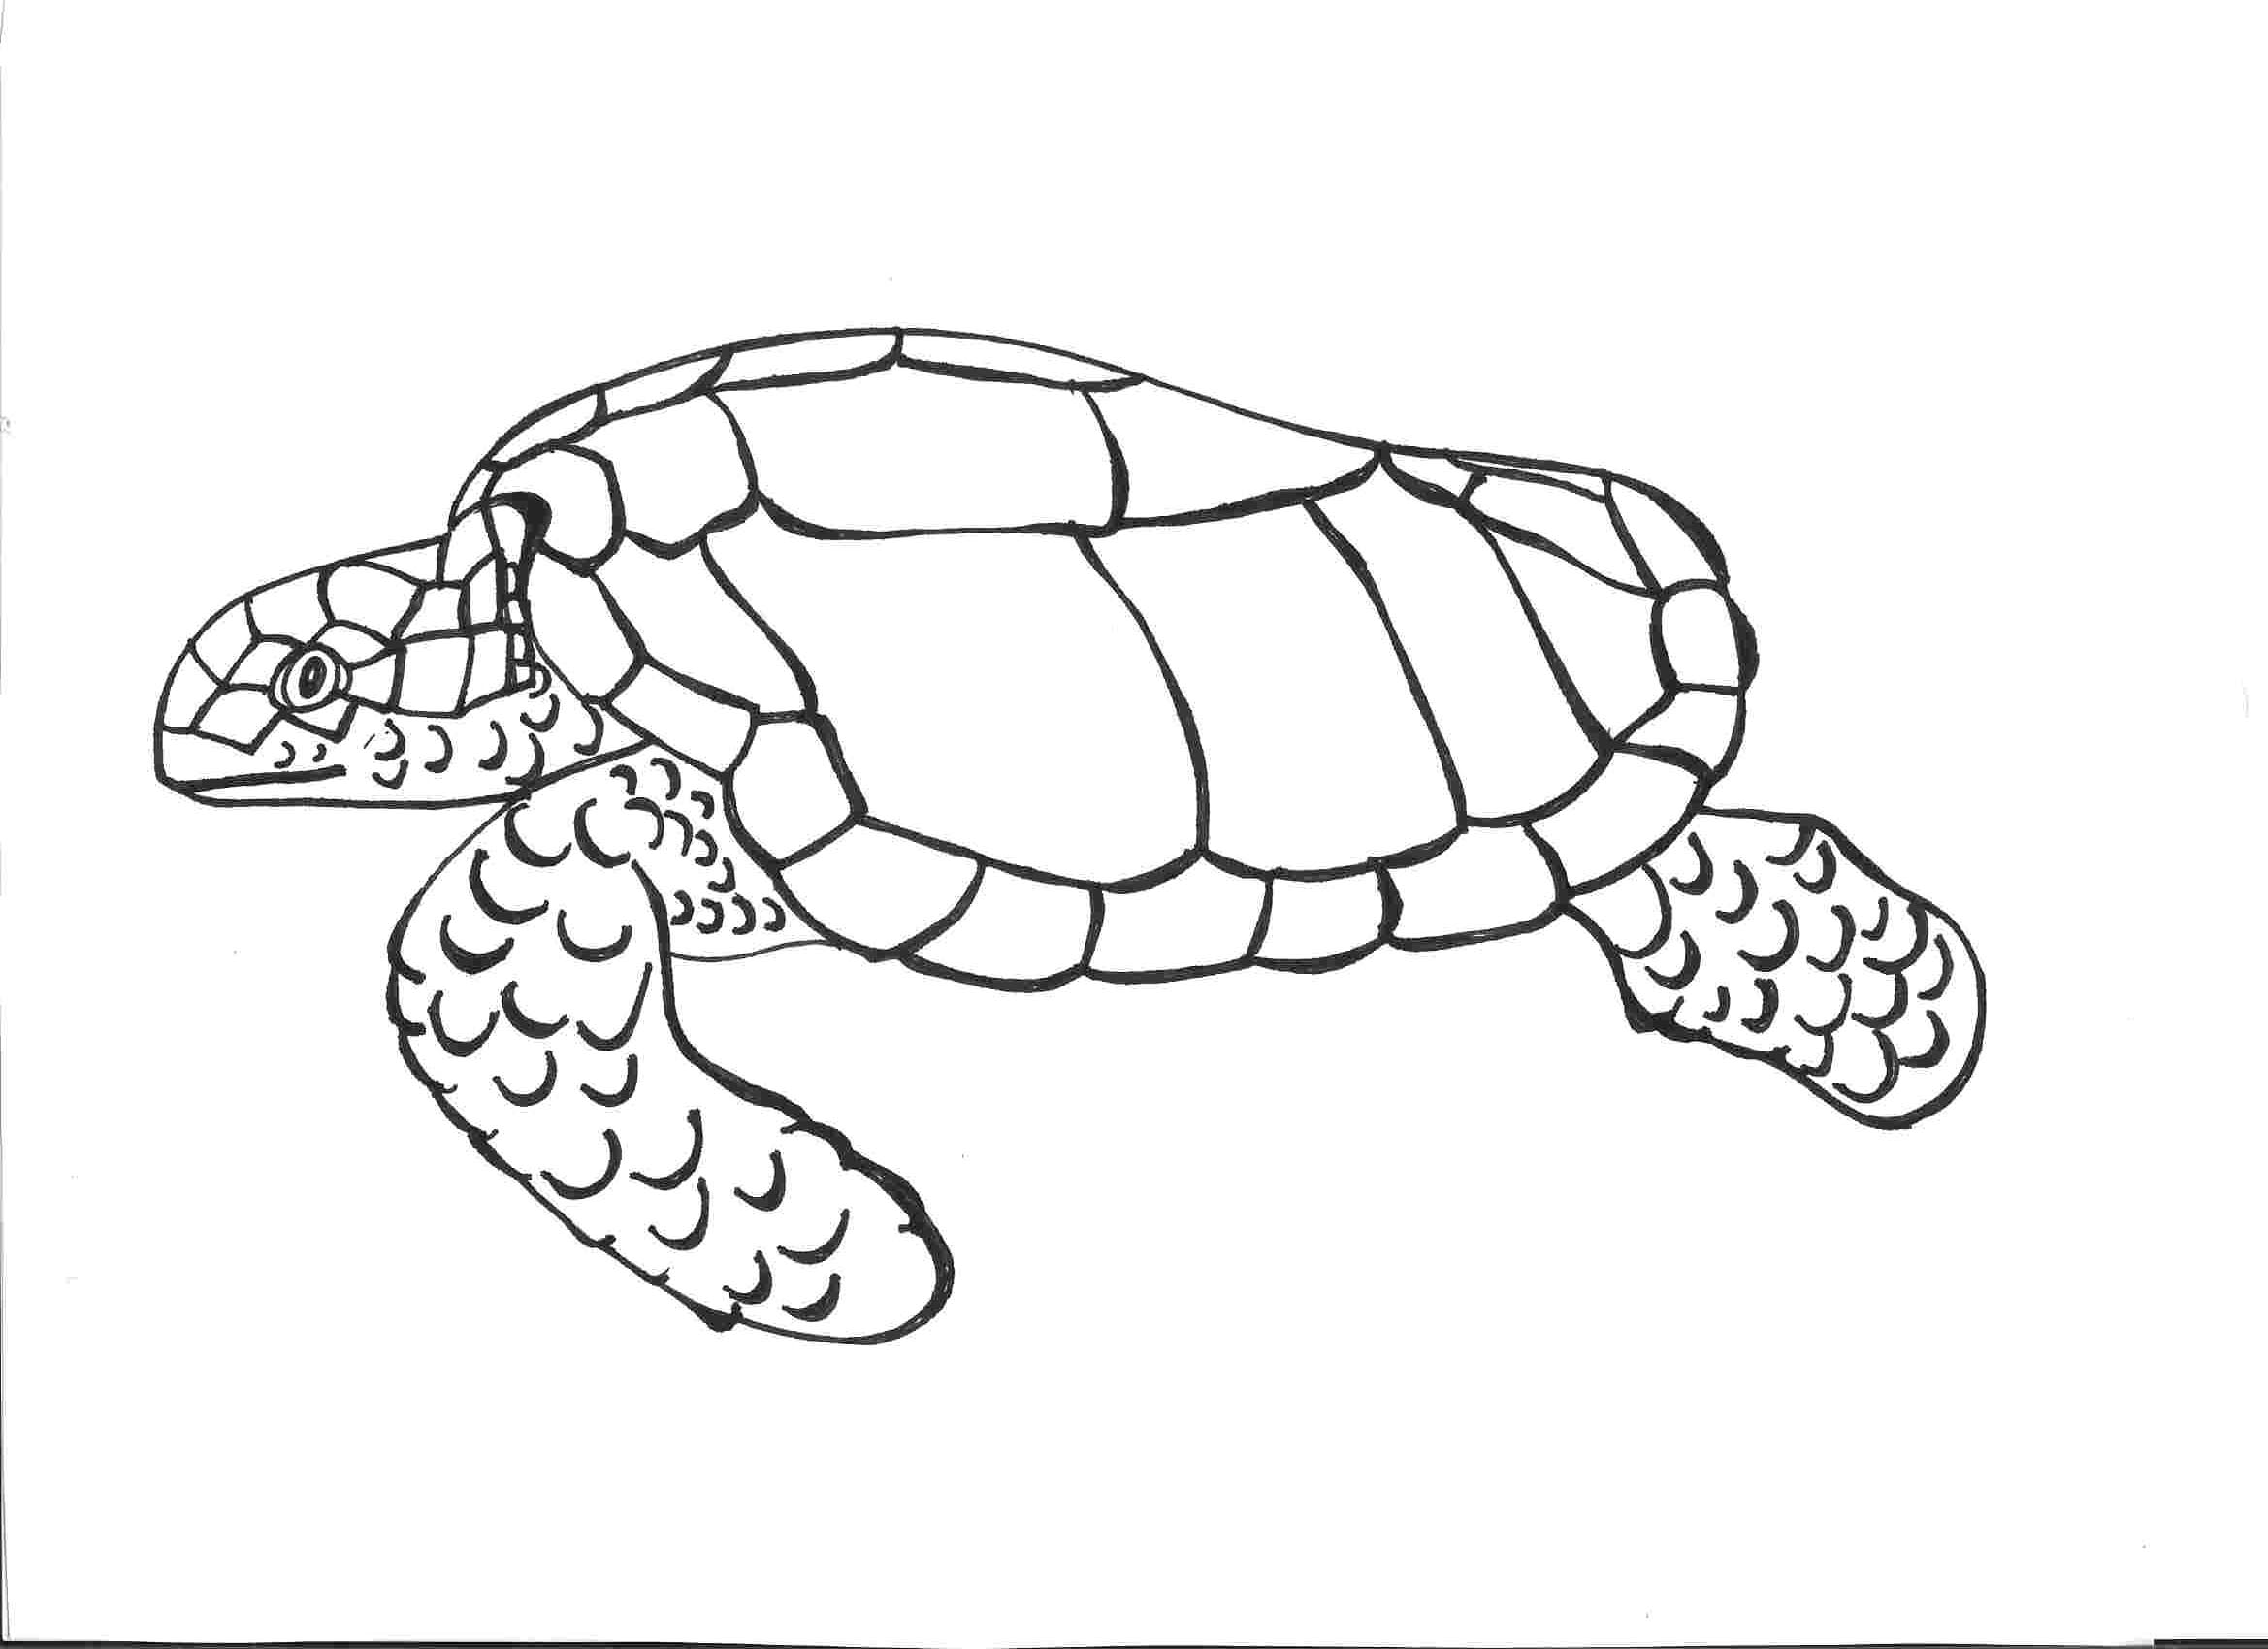 Drawn sea turtle line drawing Printable Coloring Pages Coloring Kids